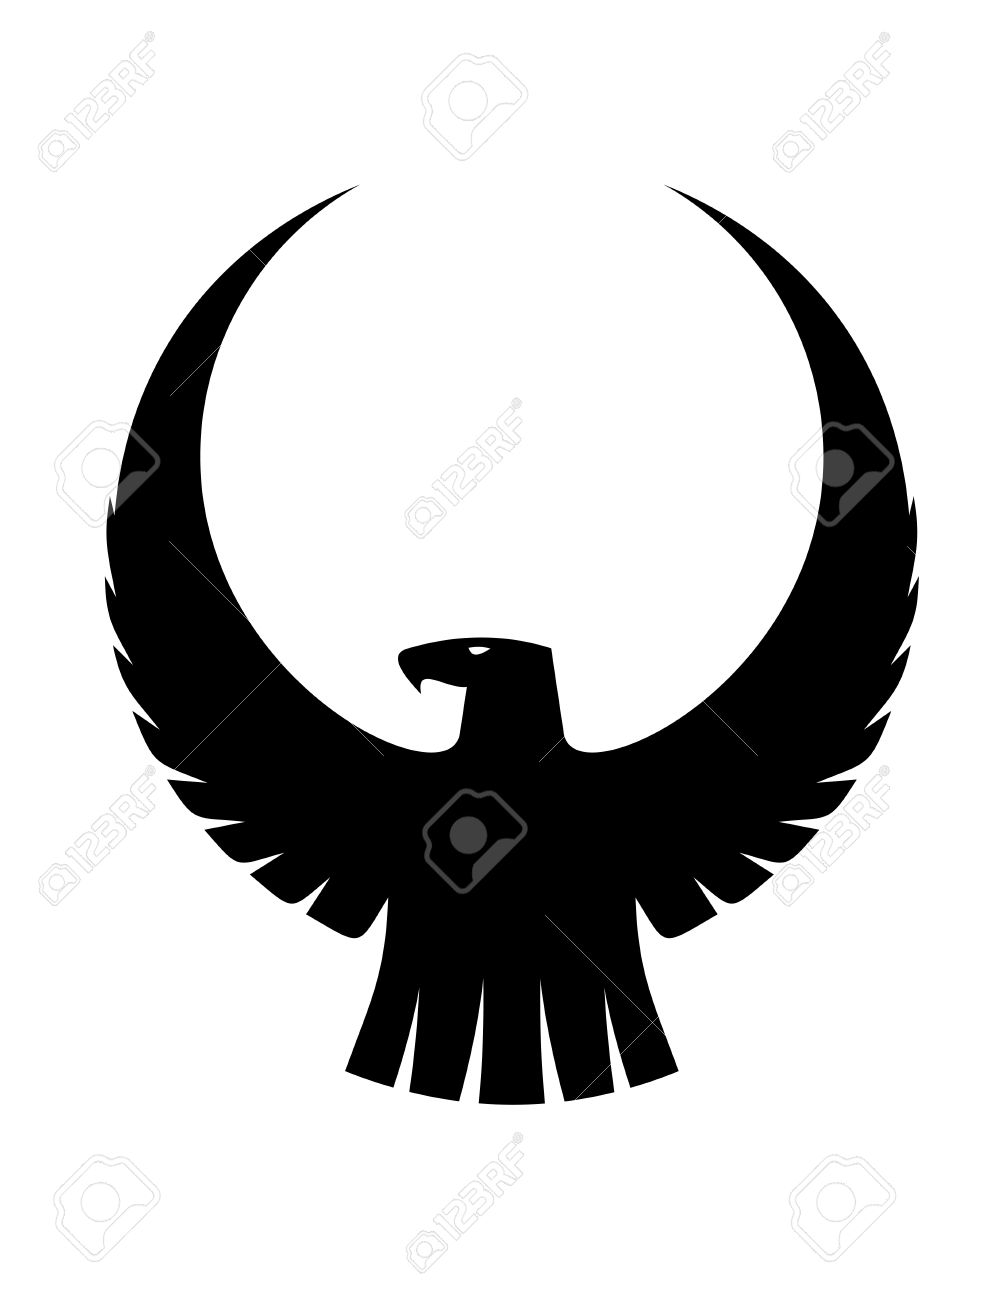 Black and white silhouette of  Eagle Head Silhouette Vector